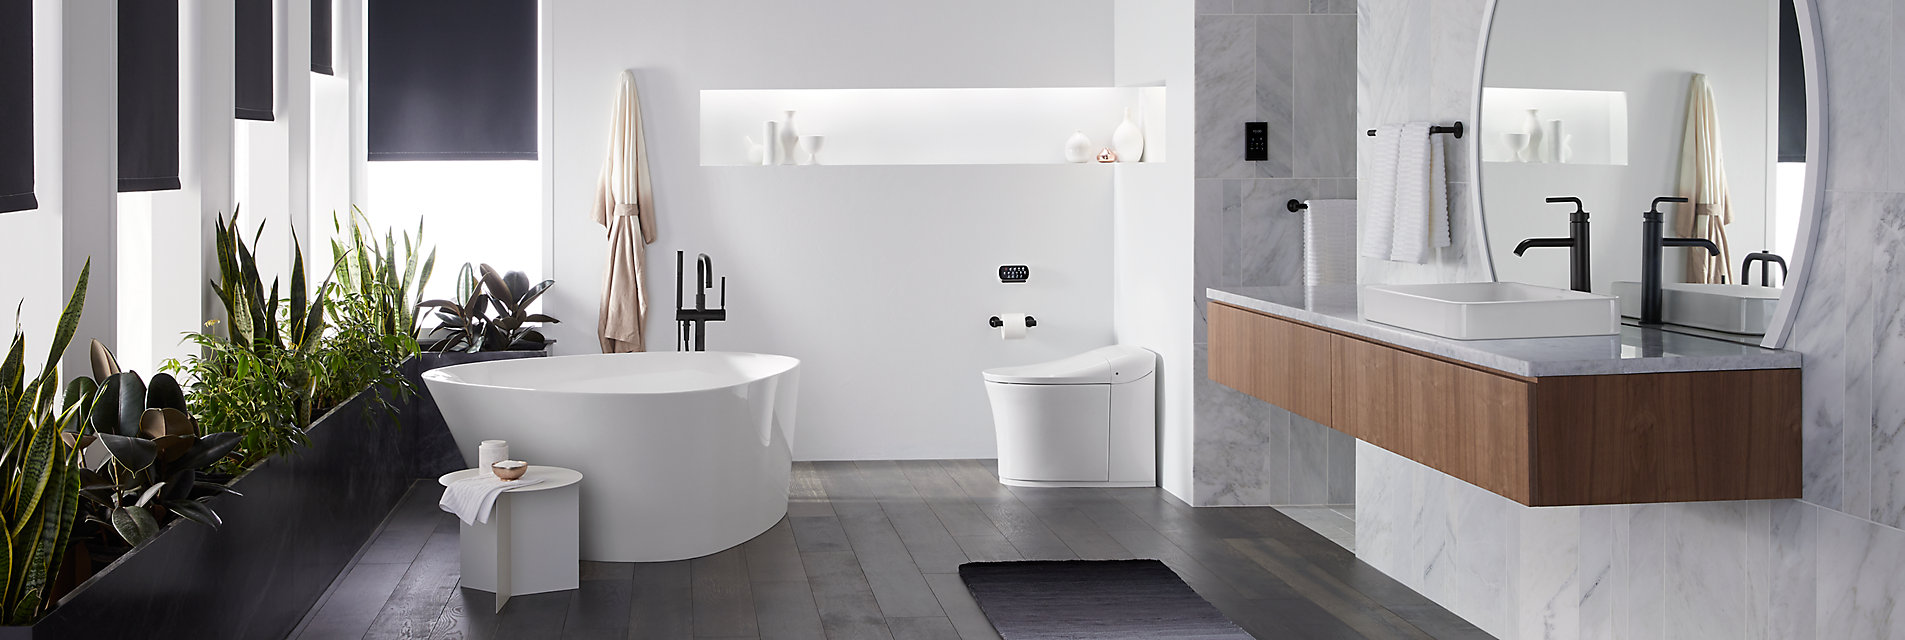 Kohler bathroom with freestanding tub